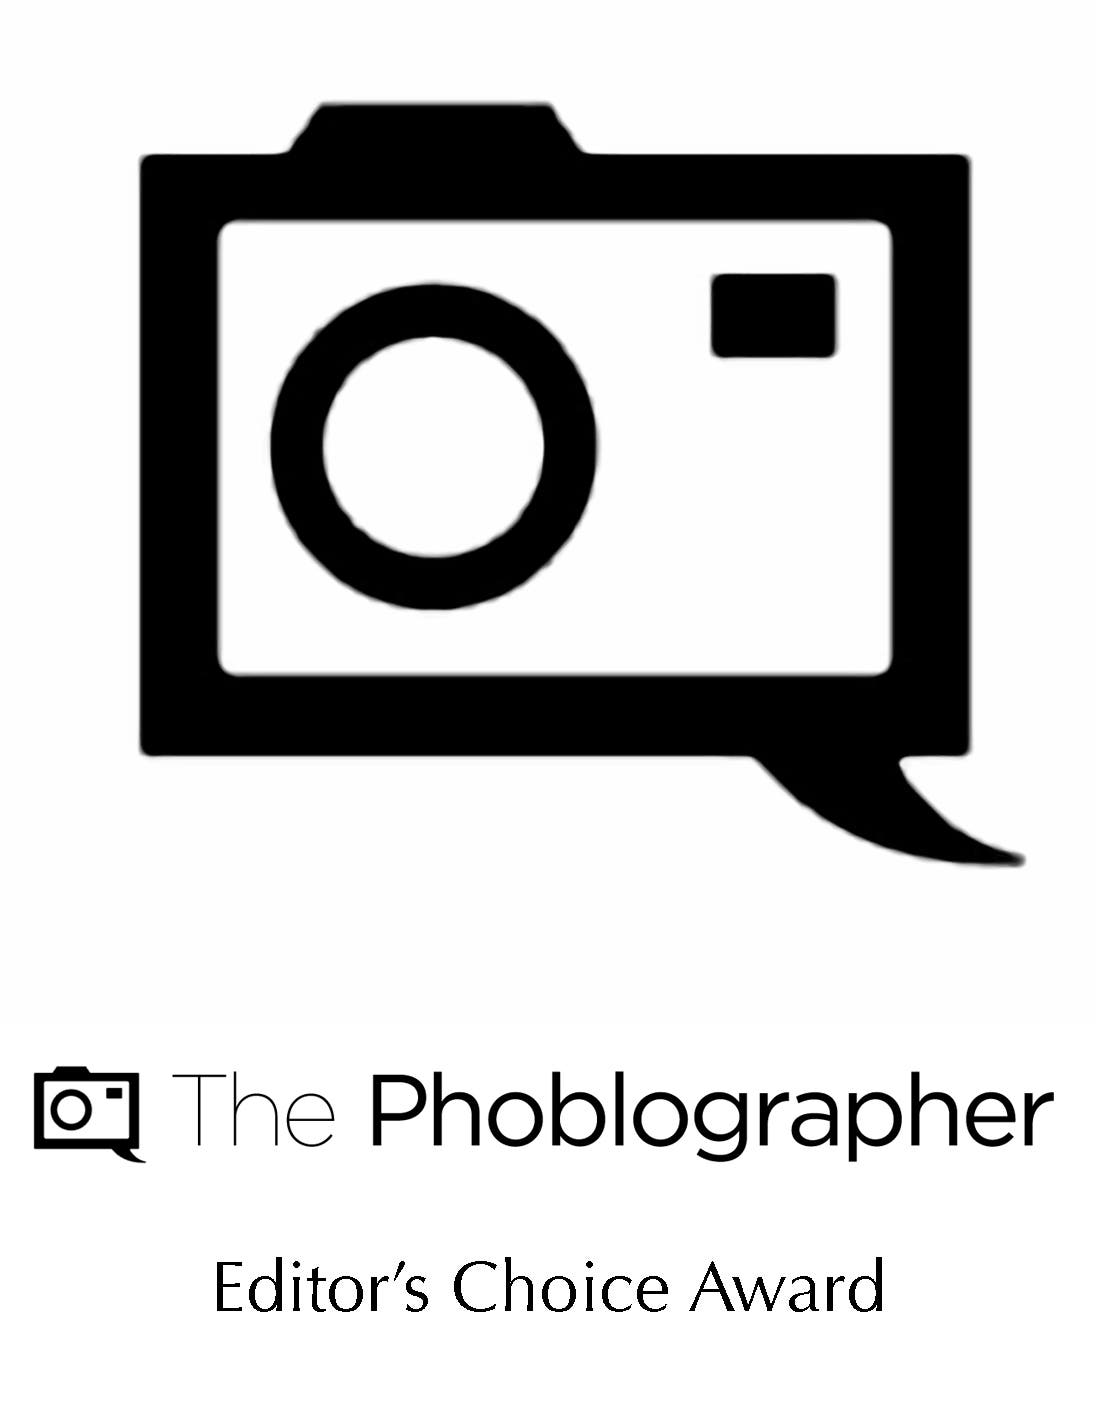 The-Phoblographer-Editor's-Choice-Award-Logo